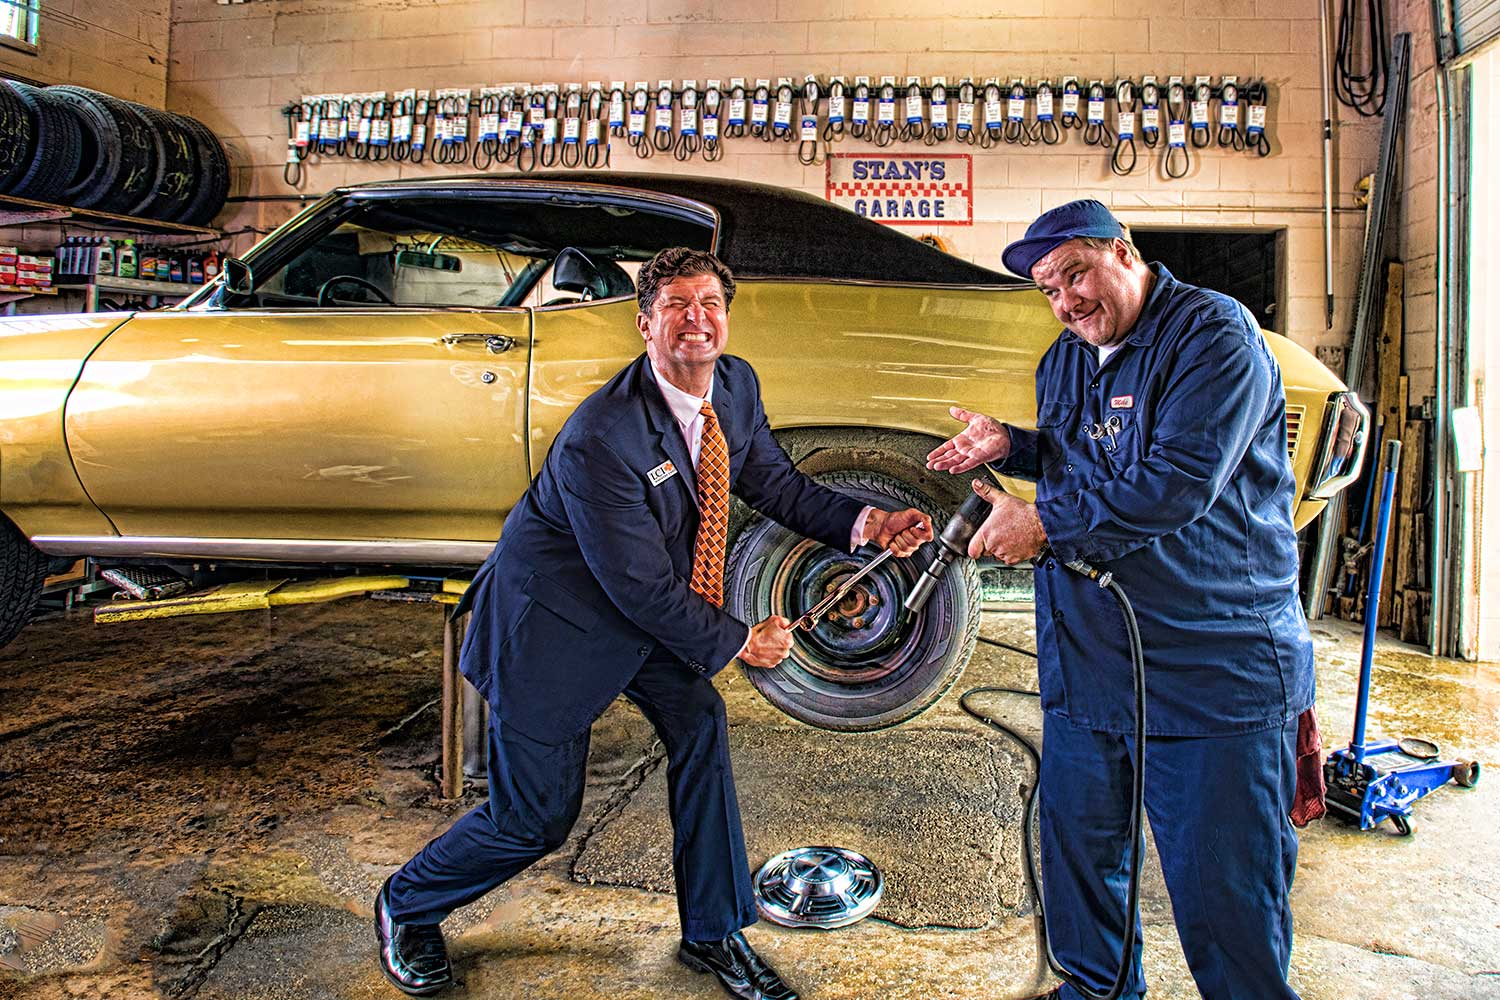 LCI Workers' Comp advertising campaign shot in a local New Orleans area garage.